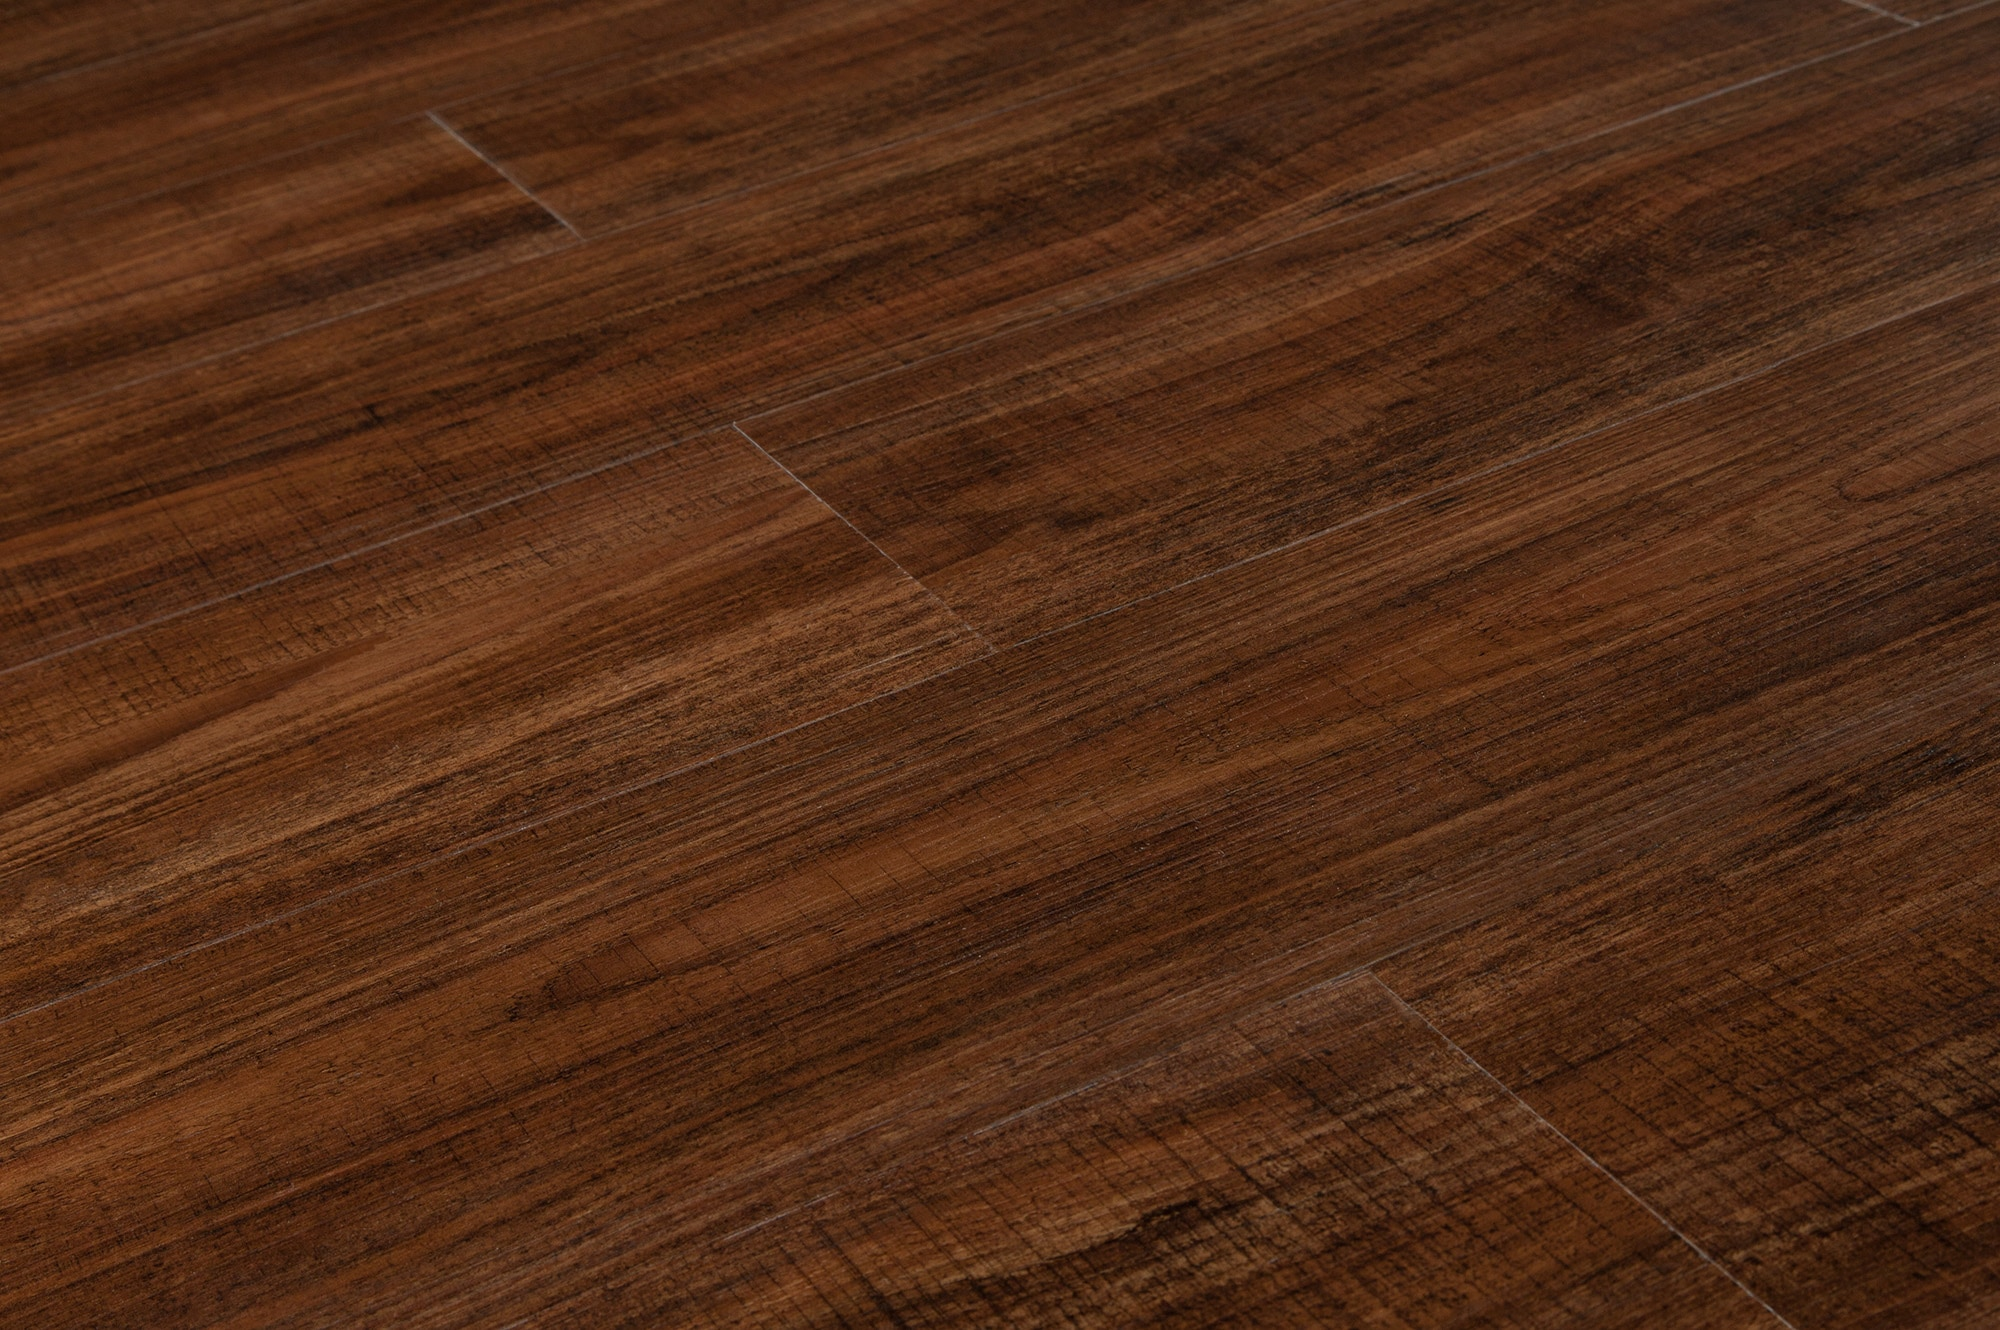 Pvc Flooring Planks : Click vinyl plank flooring vesdura planks mm